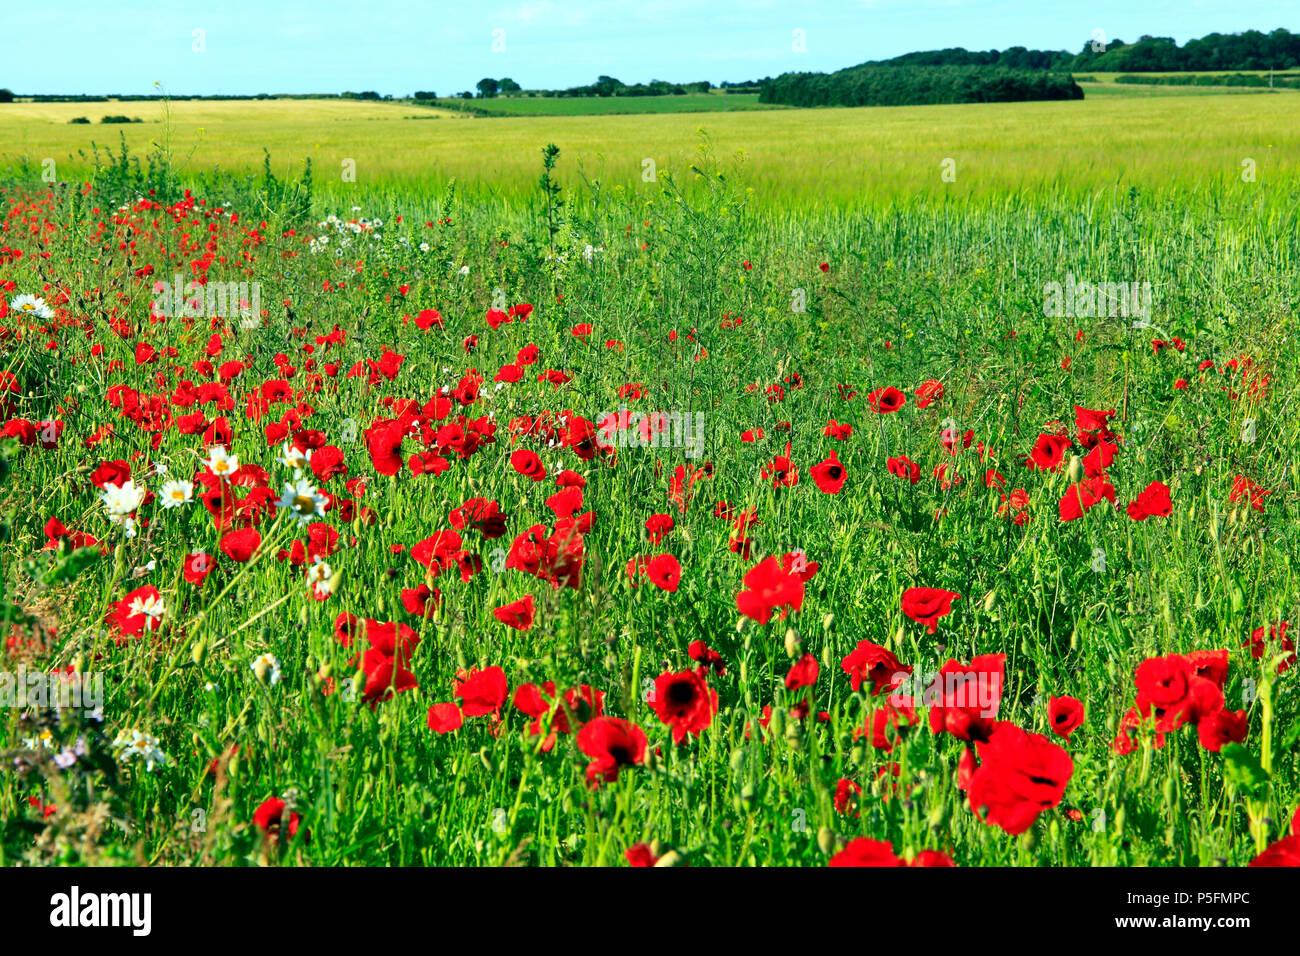 Red  field poppies, yellow field of barley, north Norfolk, England,agricultural, field, agriculture, crop, crops, barley, fields - Stock Image